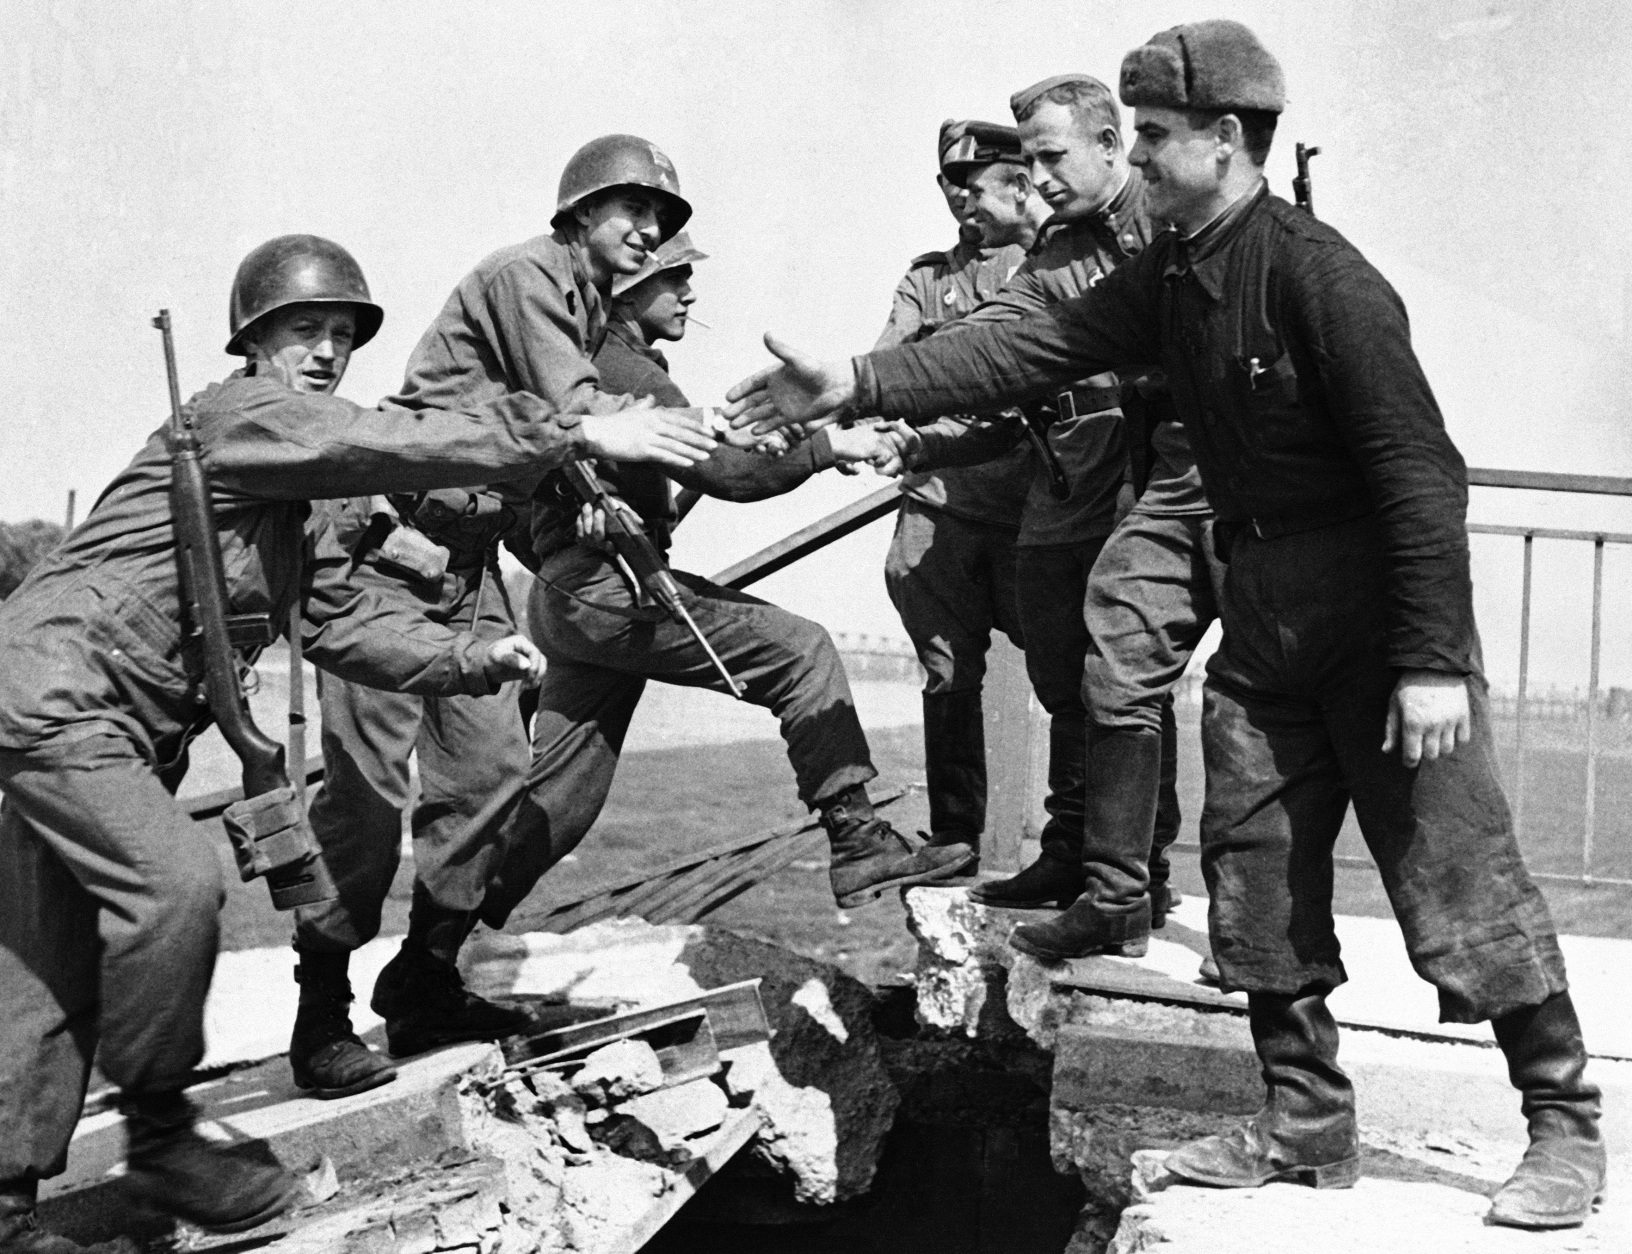 FILE - In this April 26, 1945, file photo, U.S. and Russian troops meet on the wrecked bridge over the Elbe River at Torgau, Germany. The Americans, left, and Russian soldiers are shown as they reach out to grasp each other's hands. The picture is part of an exhibition in Berlin marking the 70th anniversary of the end of World War II. (AP Photo)